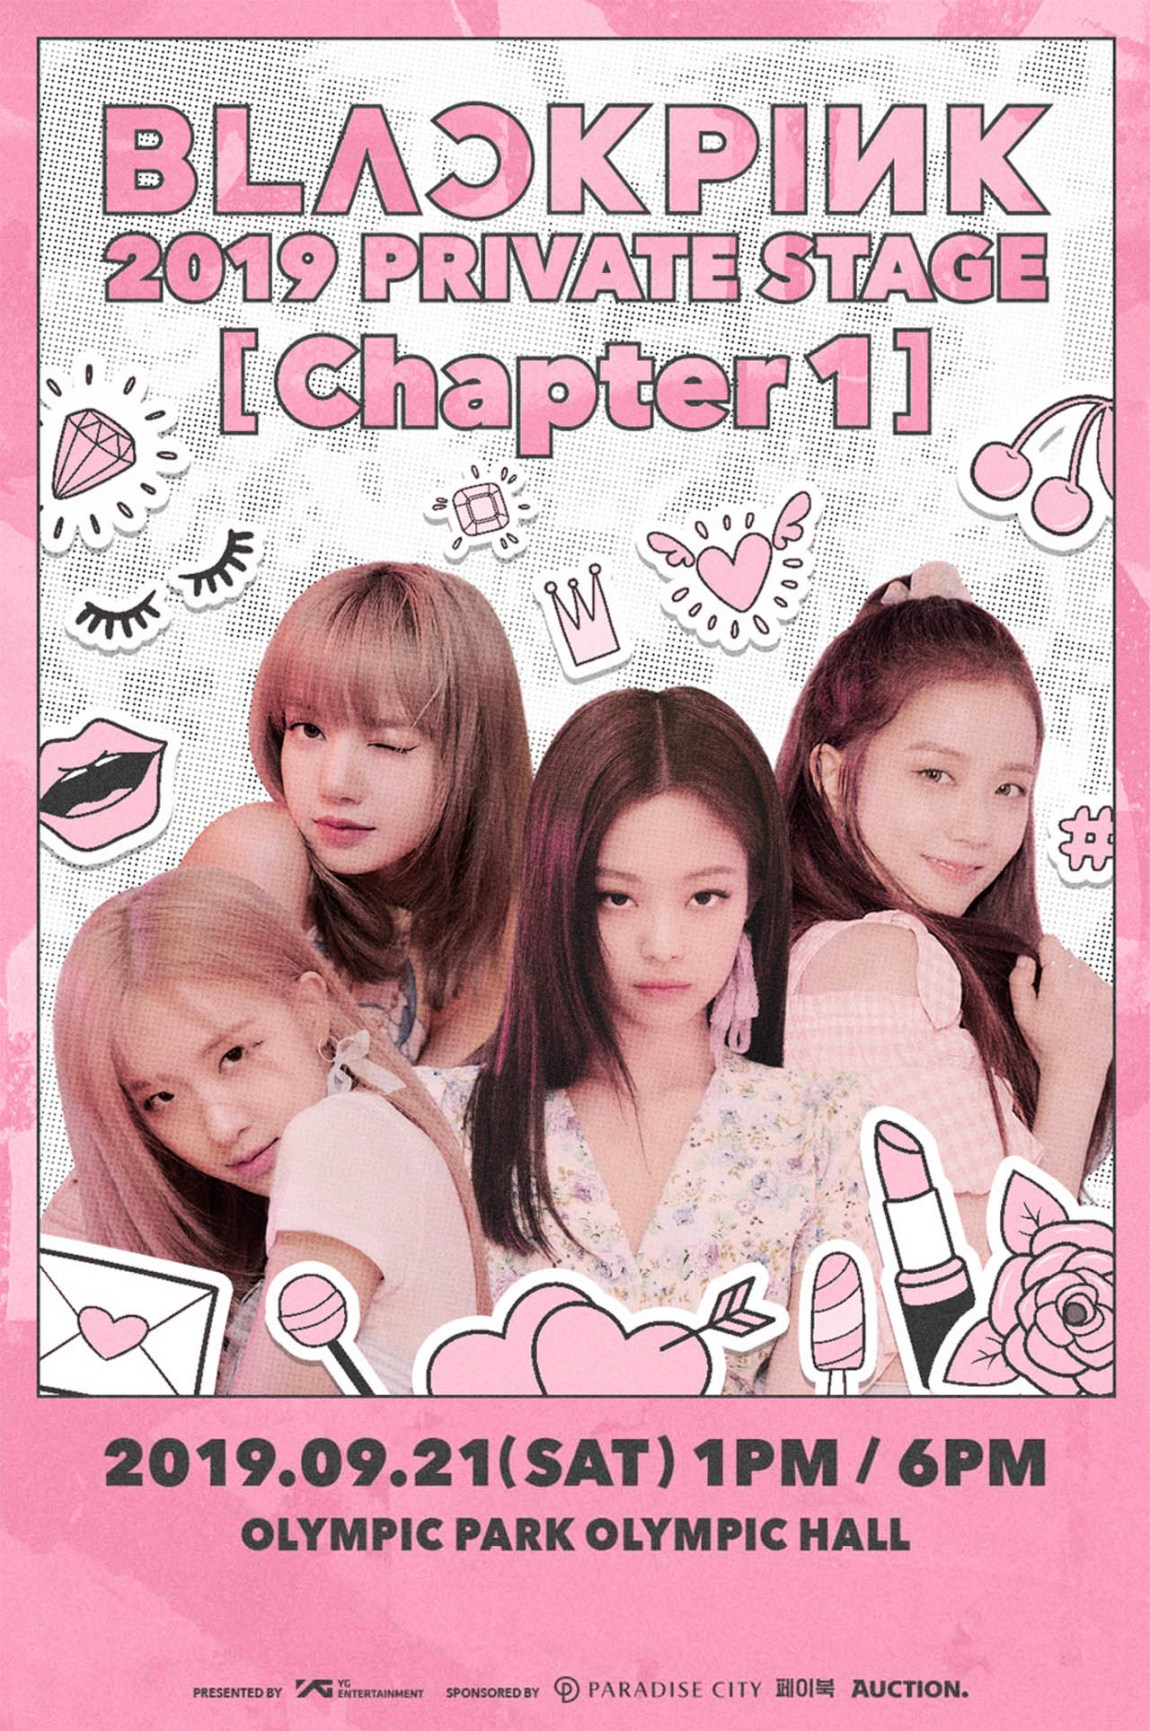 BLACKPINK 2019 PRIVATE STAGE [Chapter 1] will be held on Sep. 21